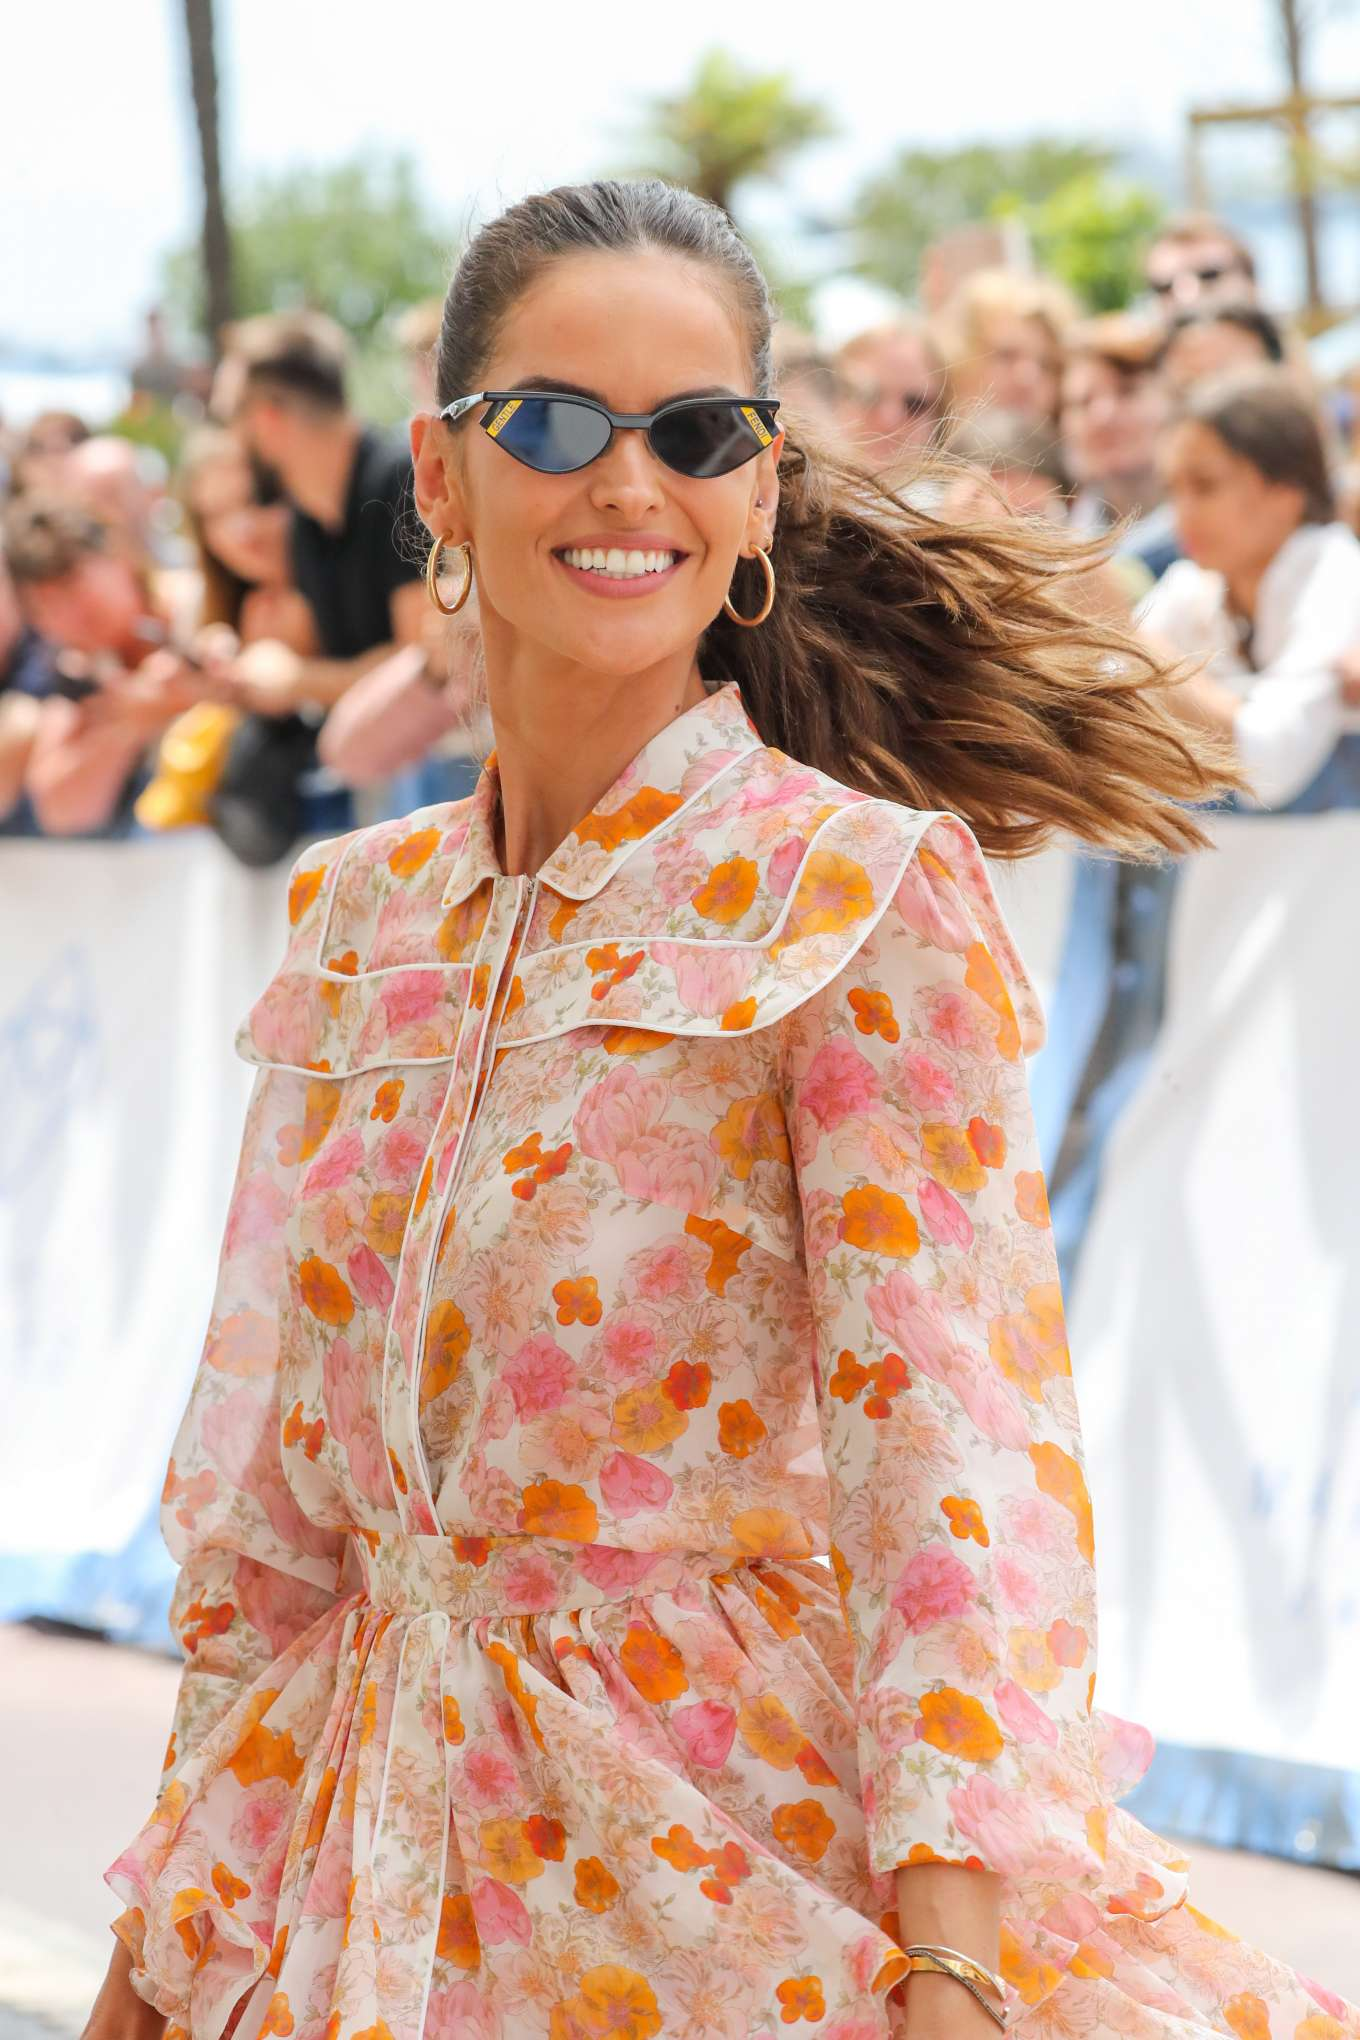 Izabel Goulart 2019 : Izabel Goulart in Floral Print Dress at the Martinez Hotel-07